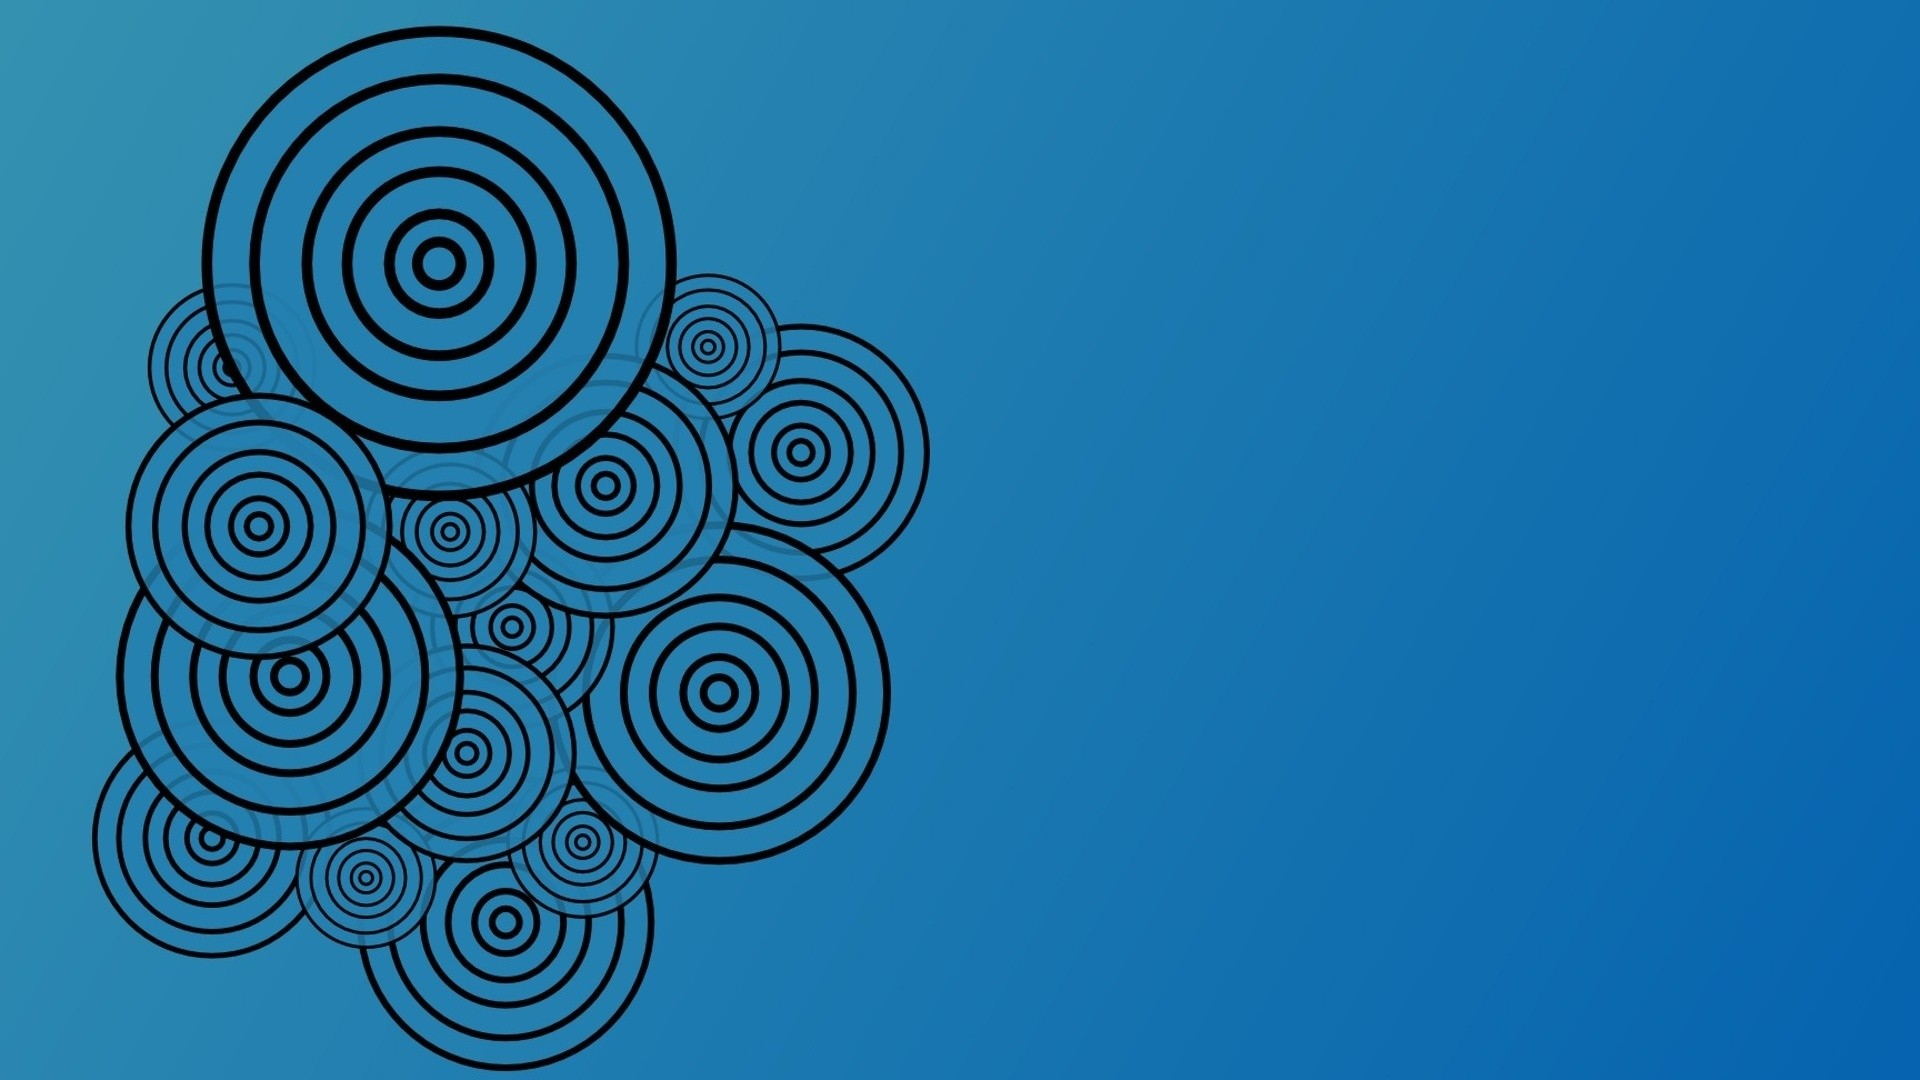 Free Vector Download Circle Blue HD Art Wallpapers Widescreen for Desktop